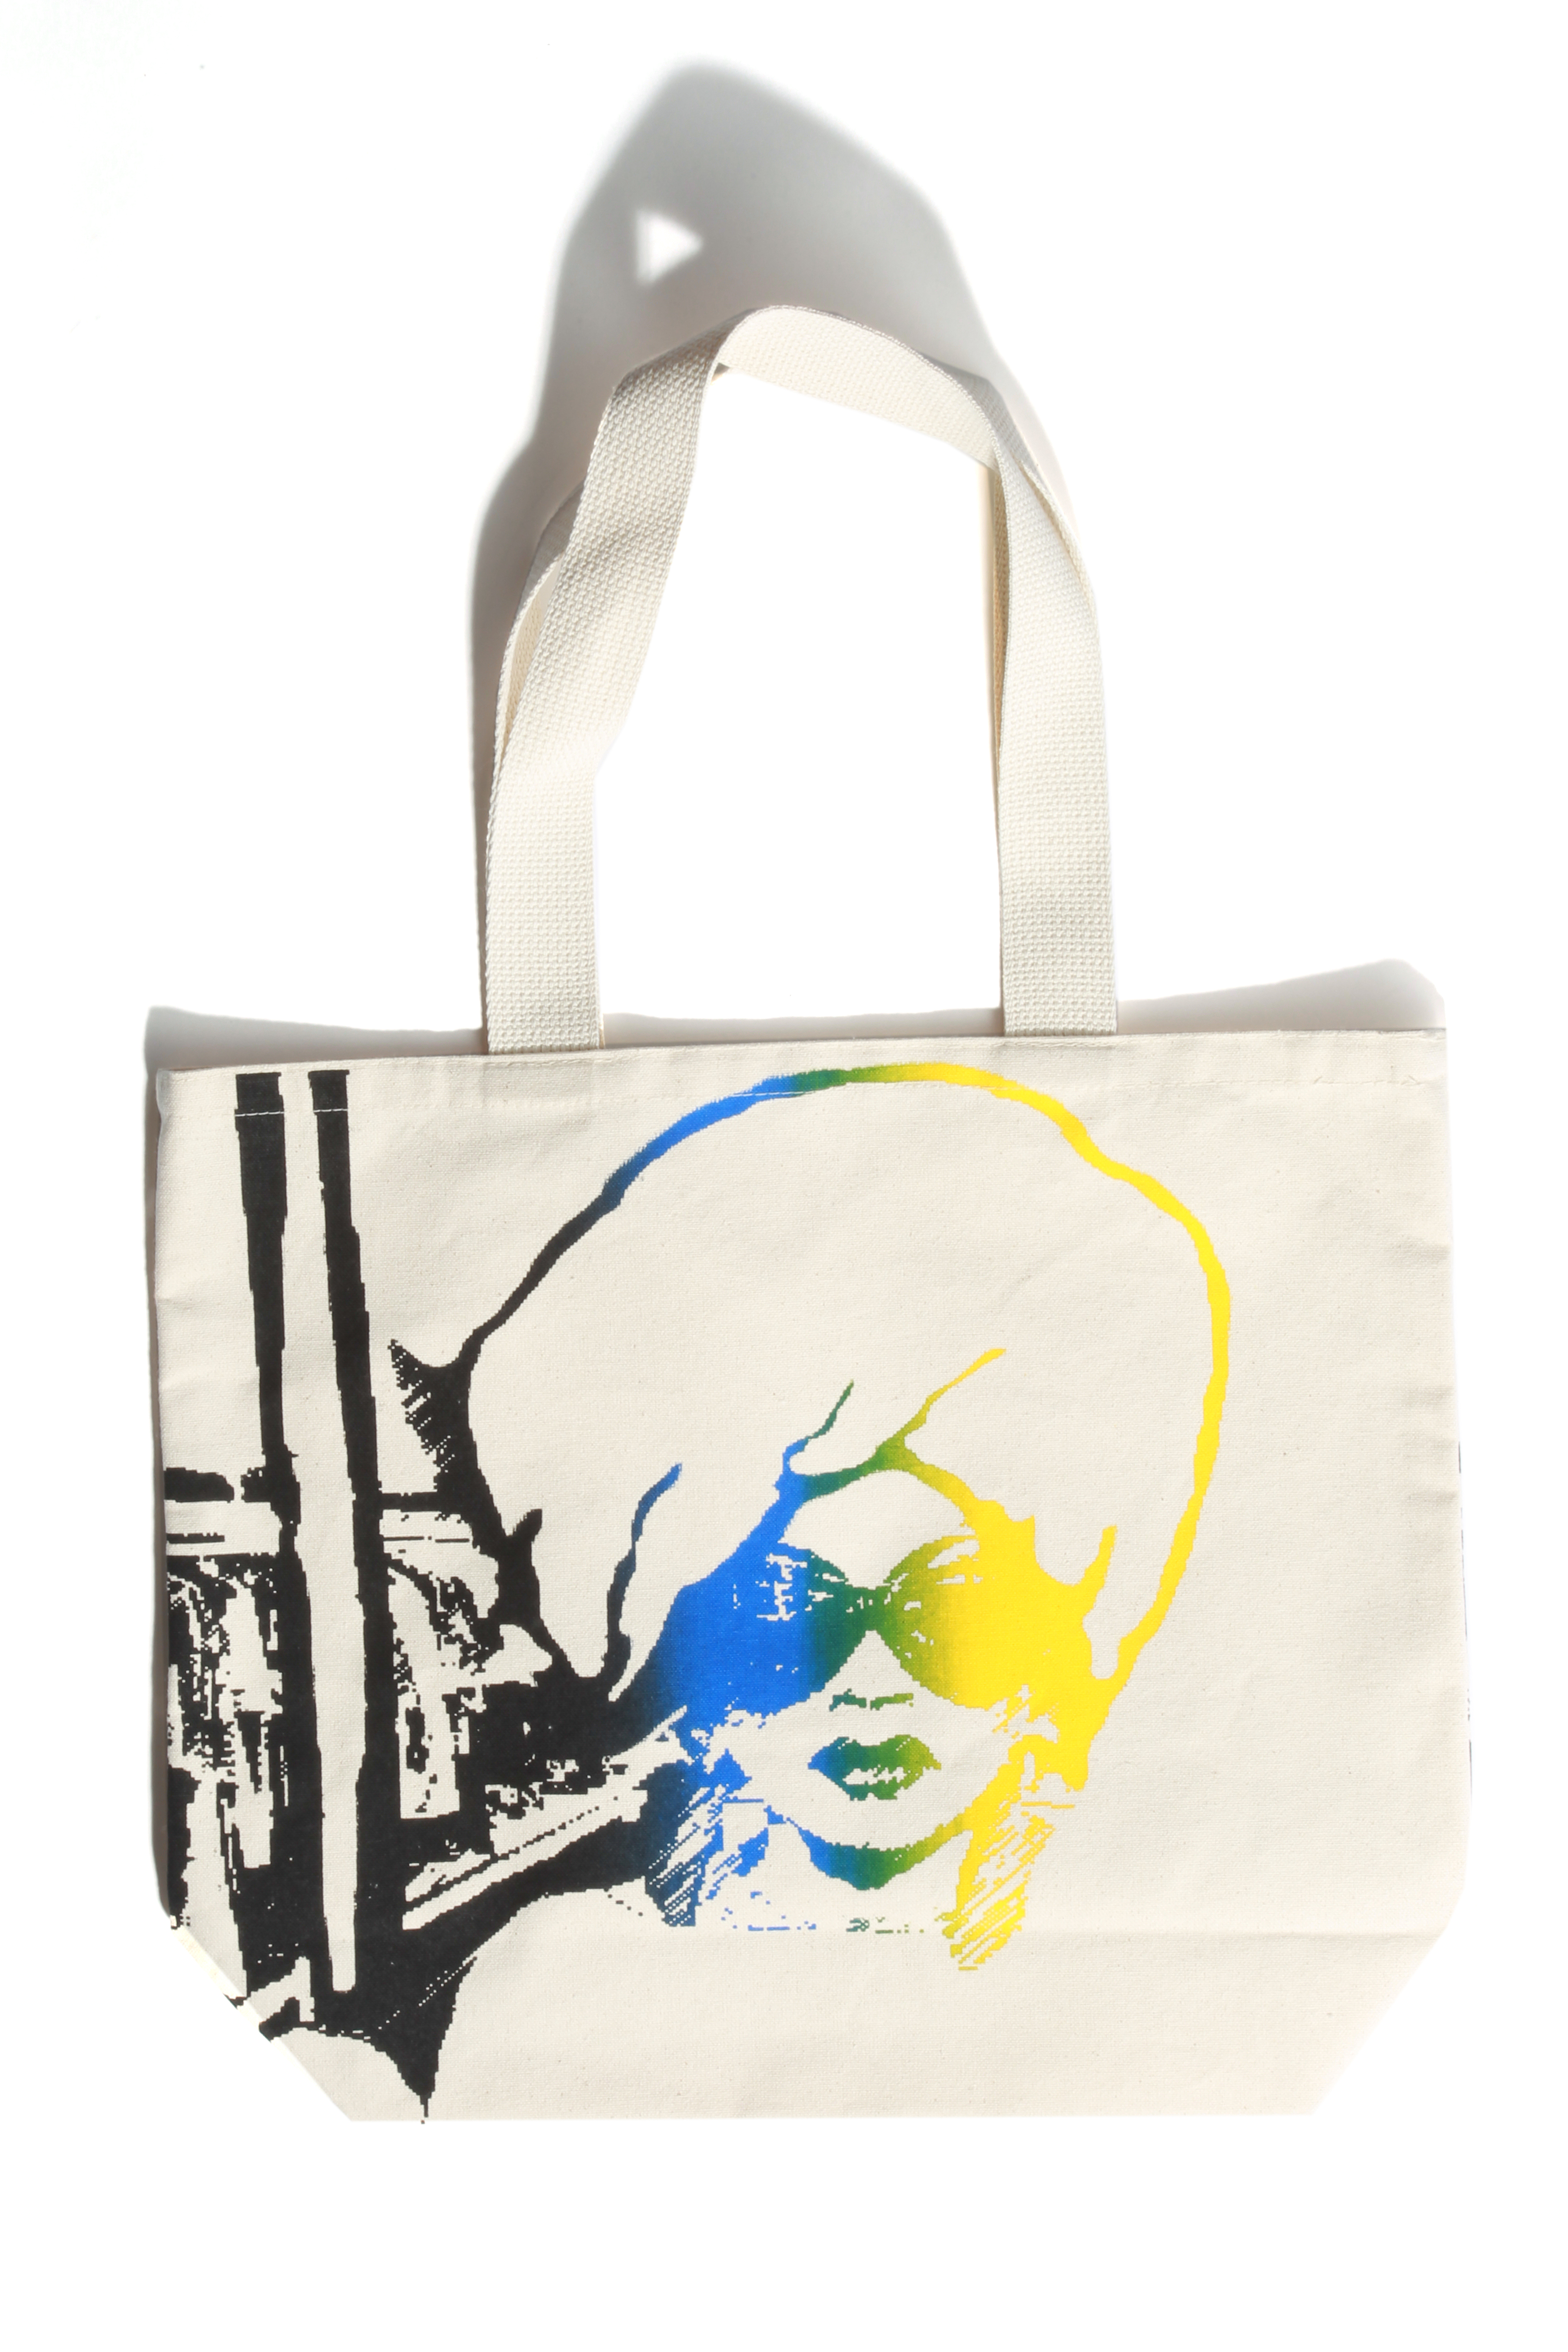 A tote designed by Yun Ling Tham.